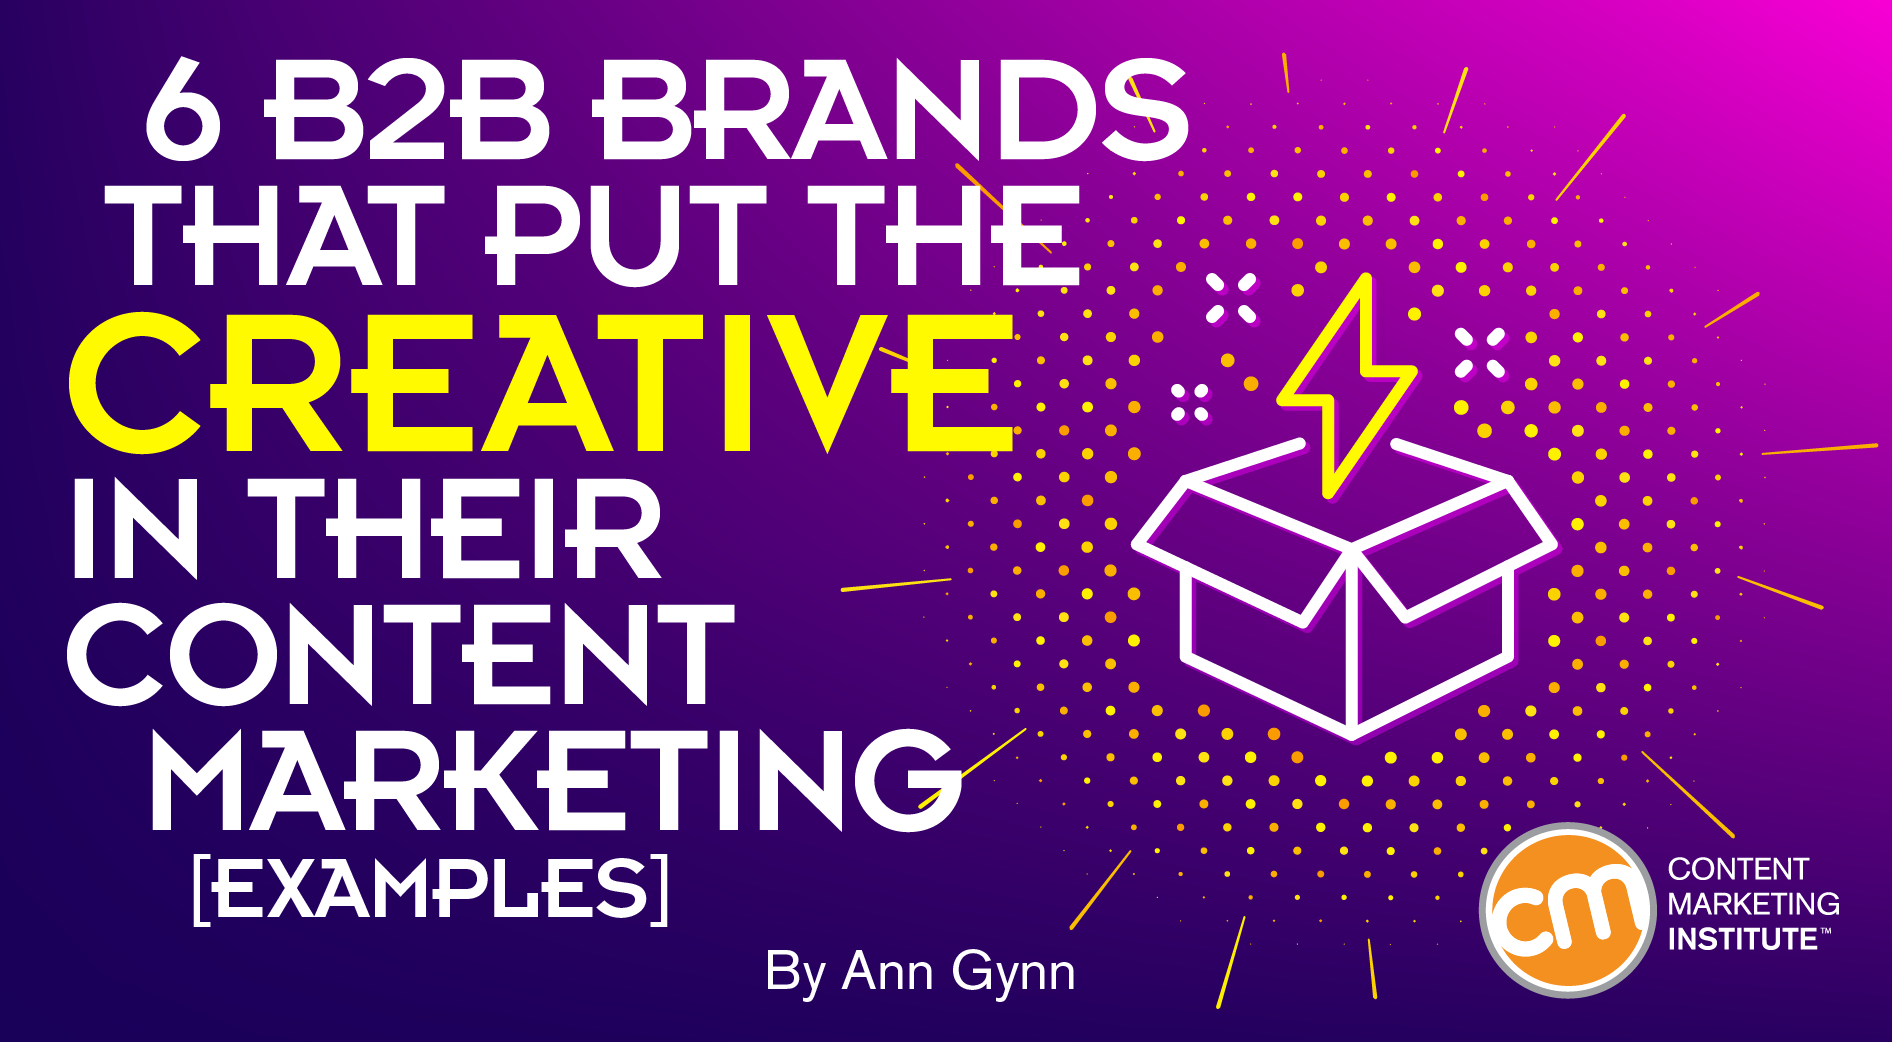 6 B2B Brands That Put the Creative in Their Content Marketing [Examples]